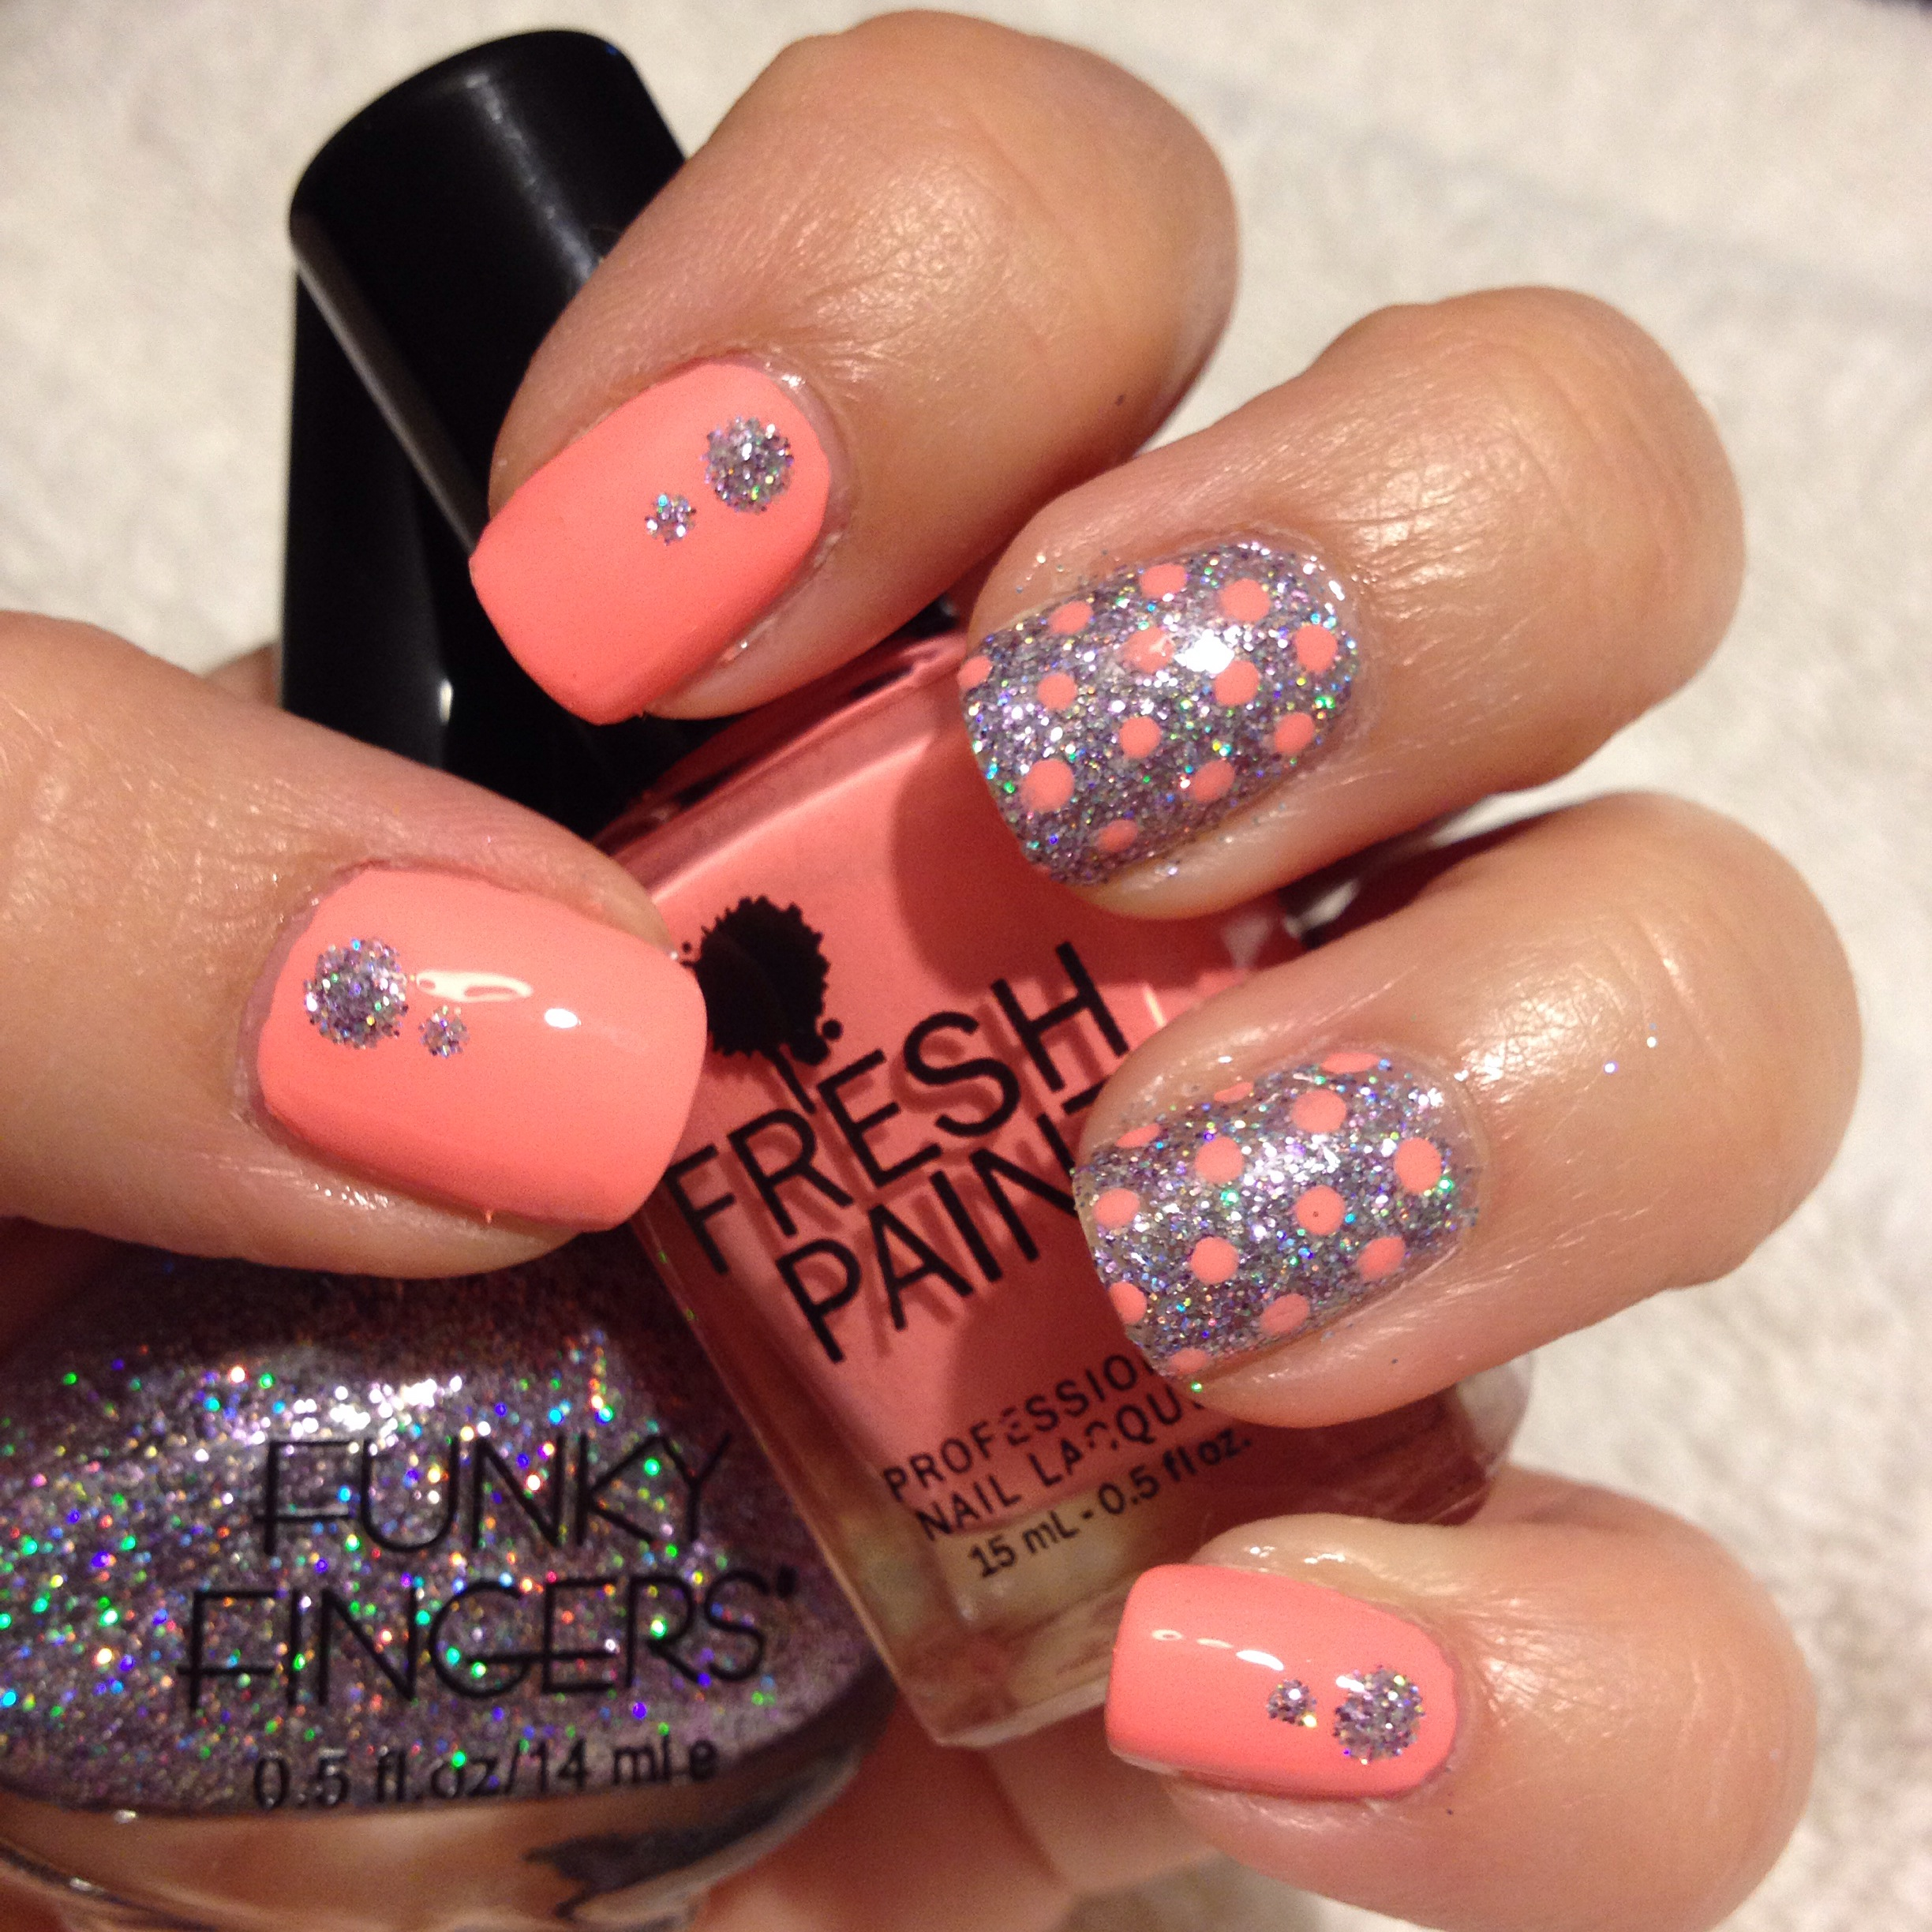 Nails of the Day – Polish Me Snazzy